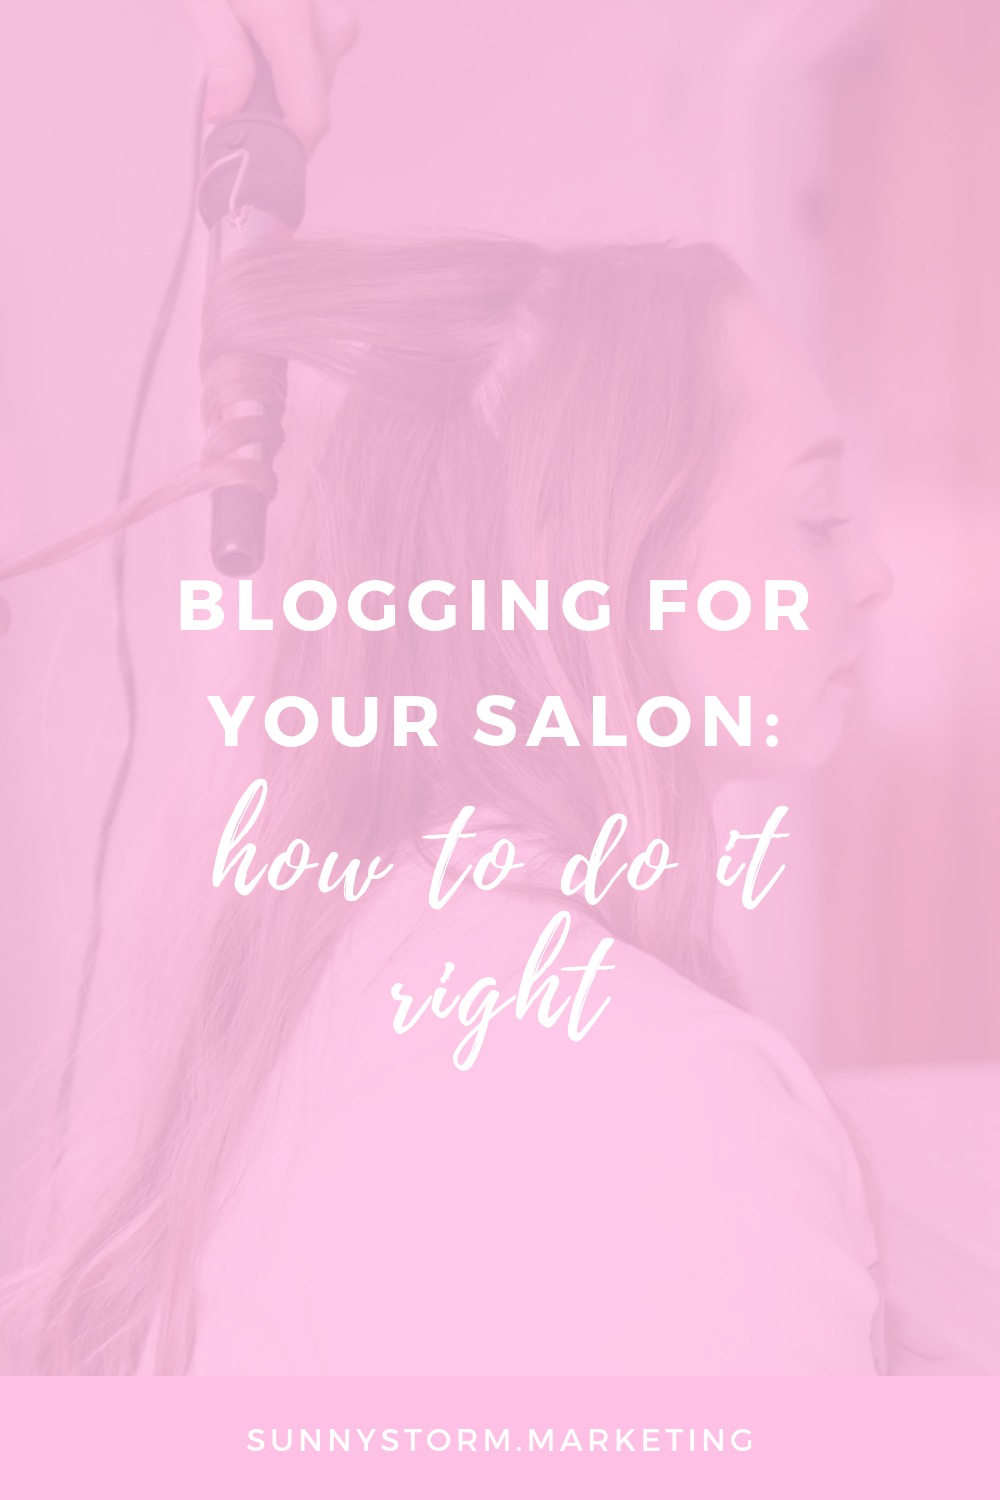 All about blogging for salons + 16 ideas for articles your clients